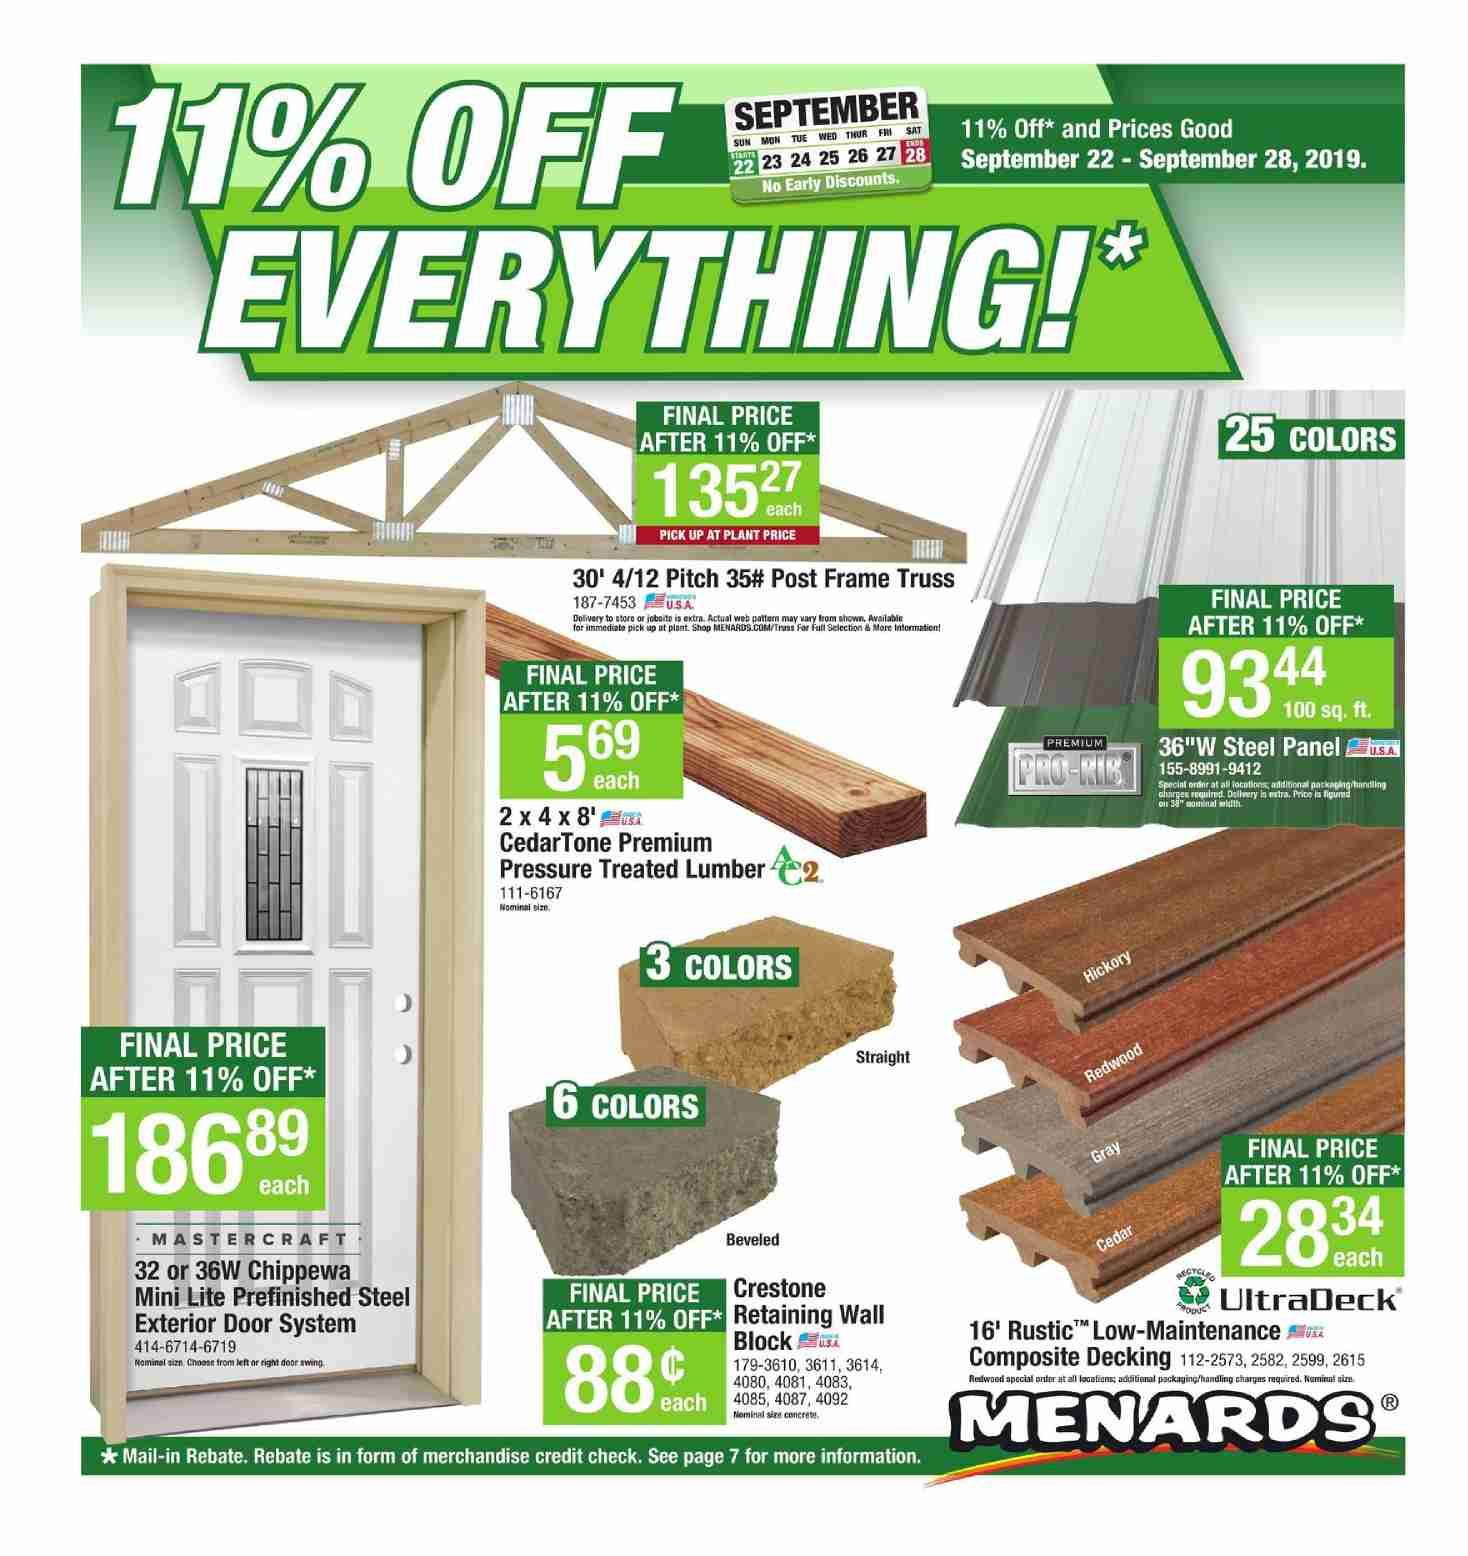 Are You Renovating Or Building A Home Check Out Sunday Ad The Latest Menards Weekly Ad Flyer September 22 28 2019 Menards Landscape Materials September 22